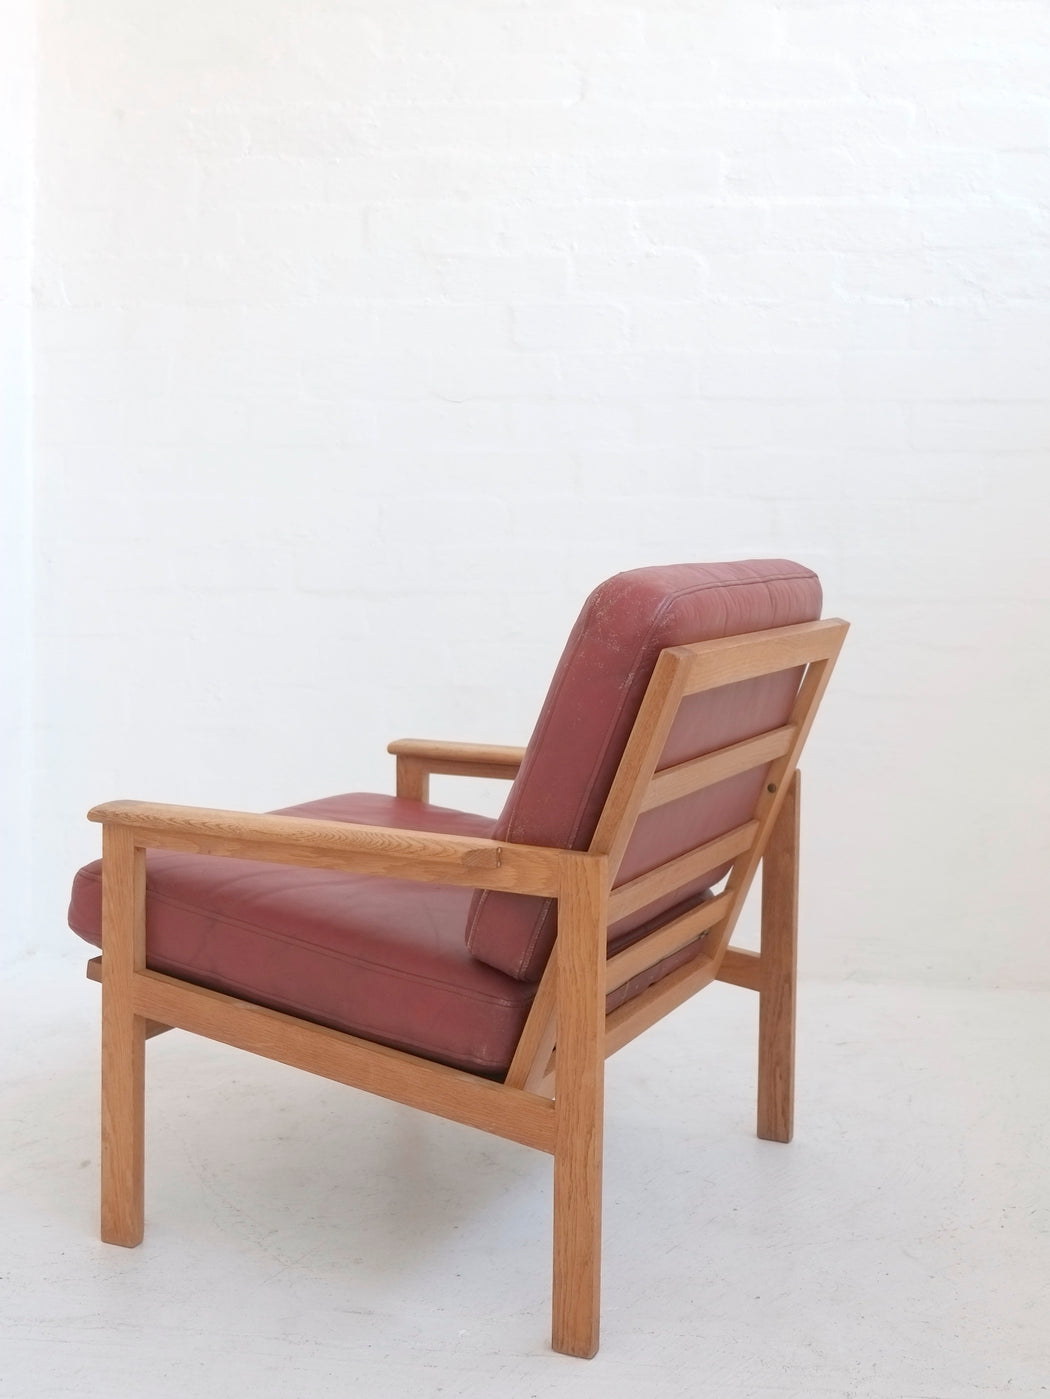 Illum Wikkelso 'Capella' Chair